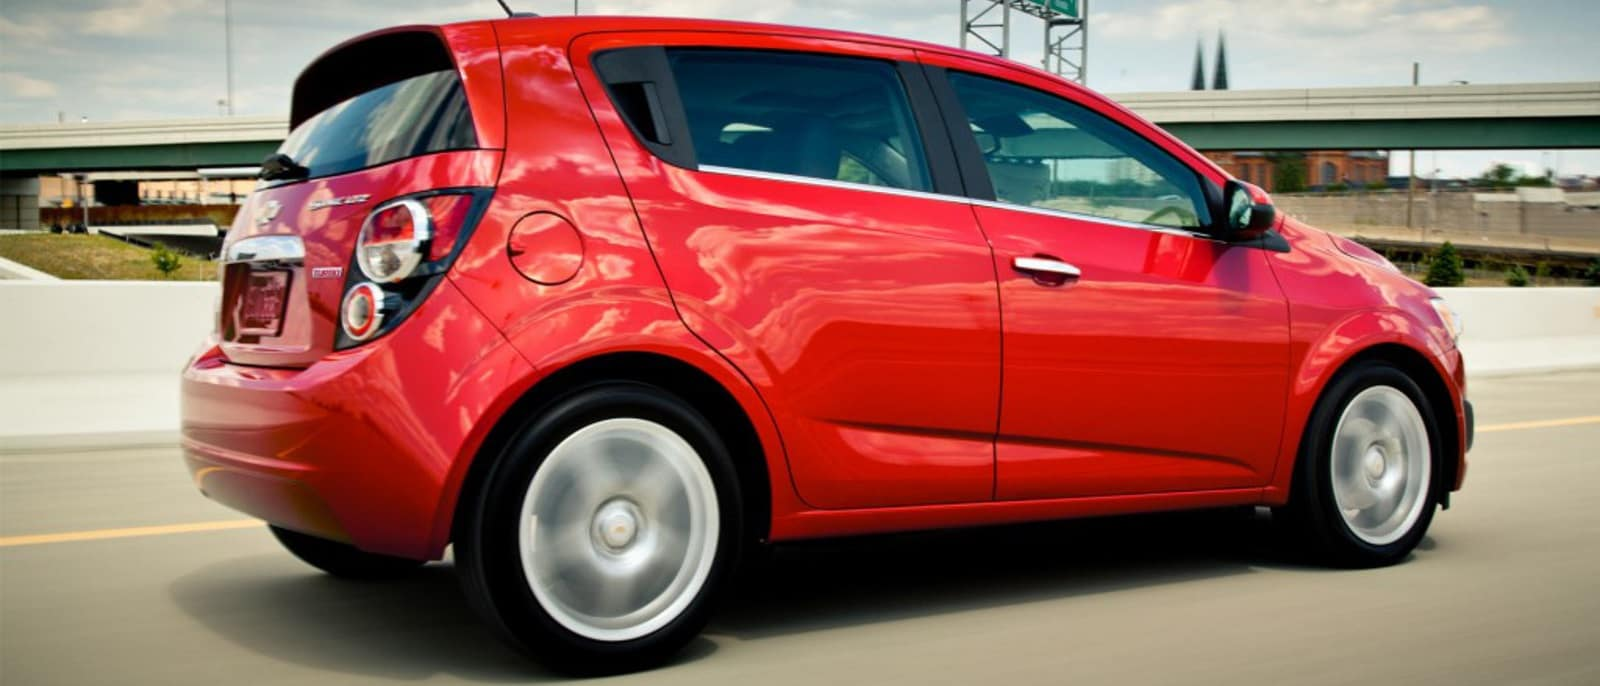 2015 chevy sonic owners manual pdf